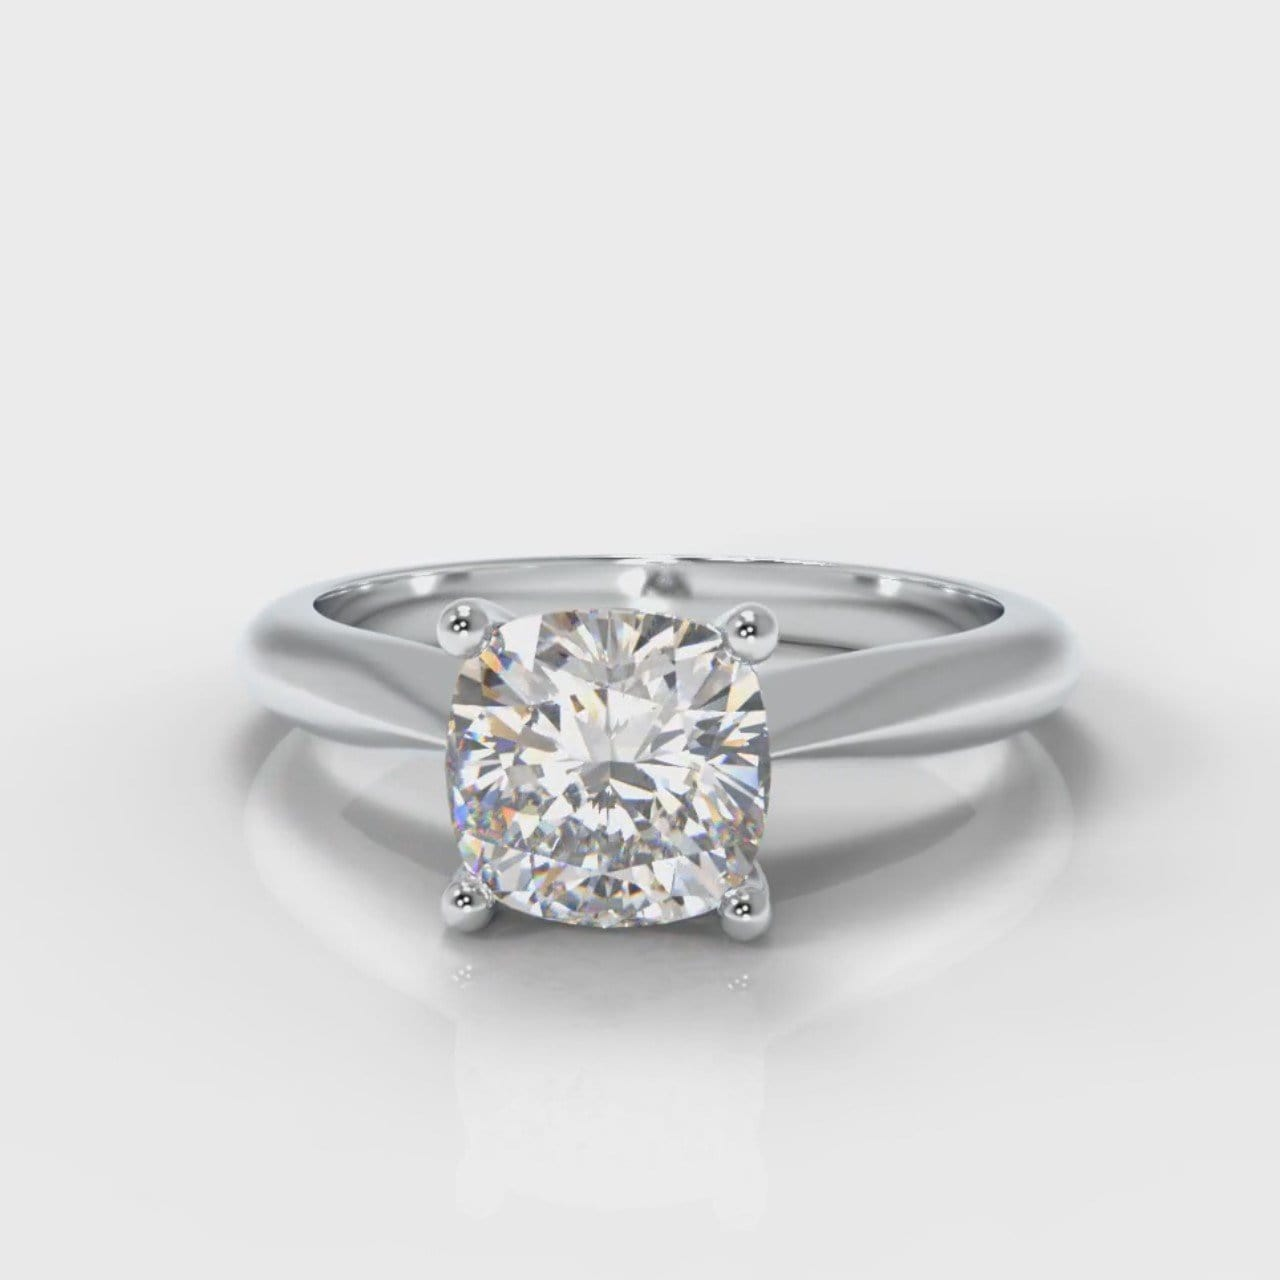 Carrée Solitaire Cushion Cut Diamond Engagement Ring